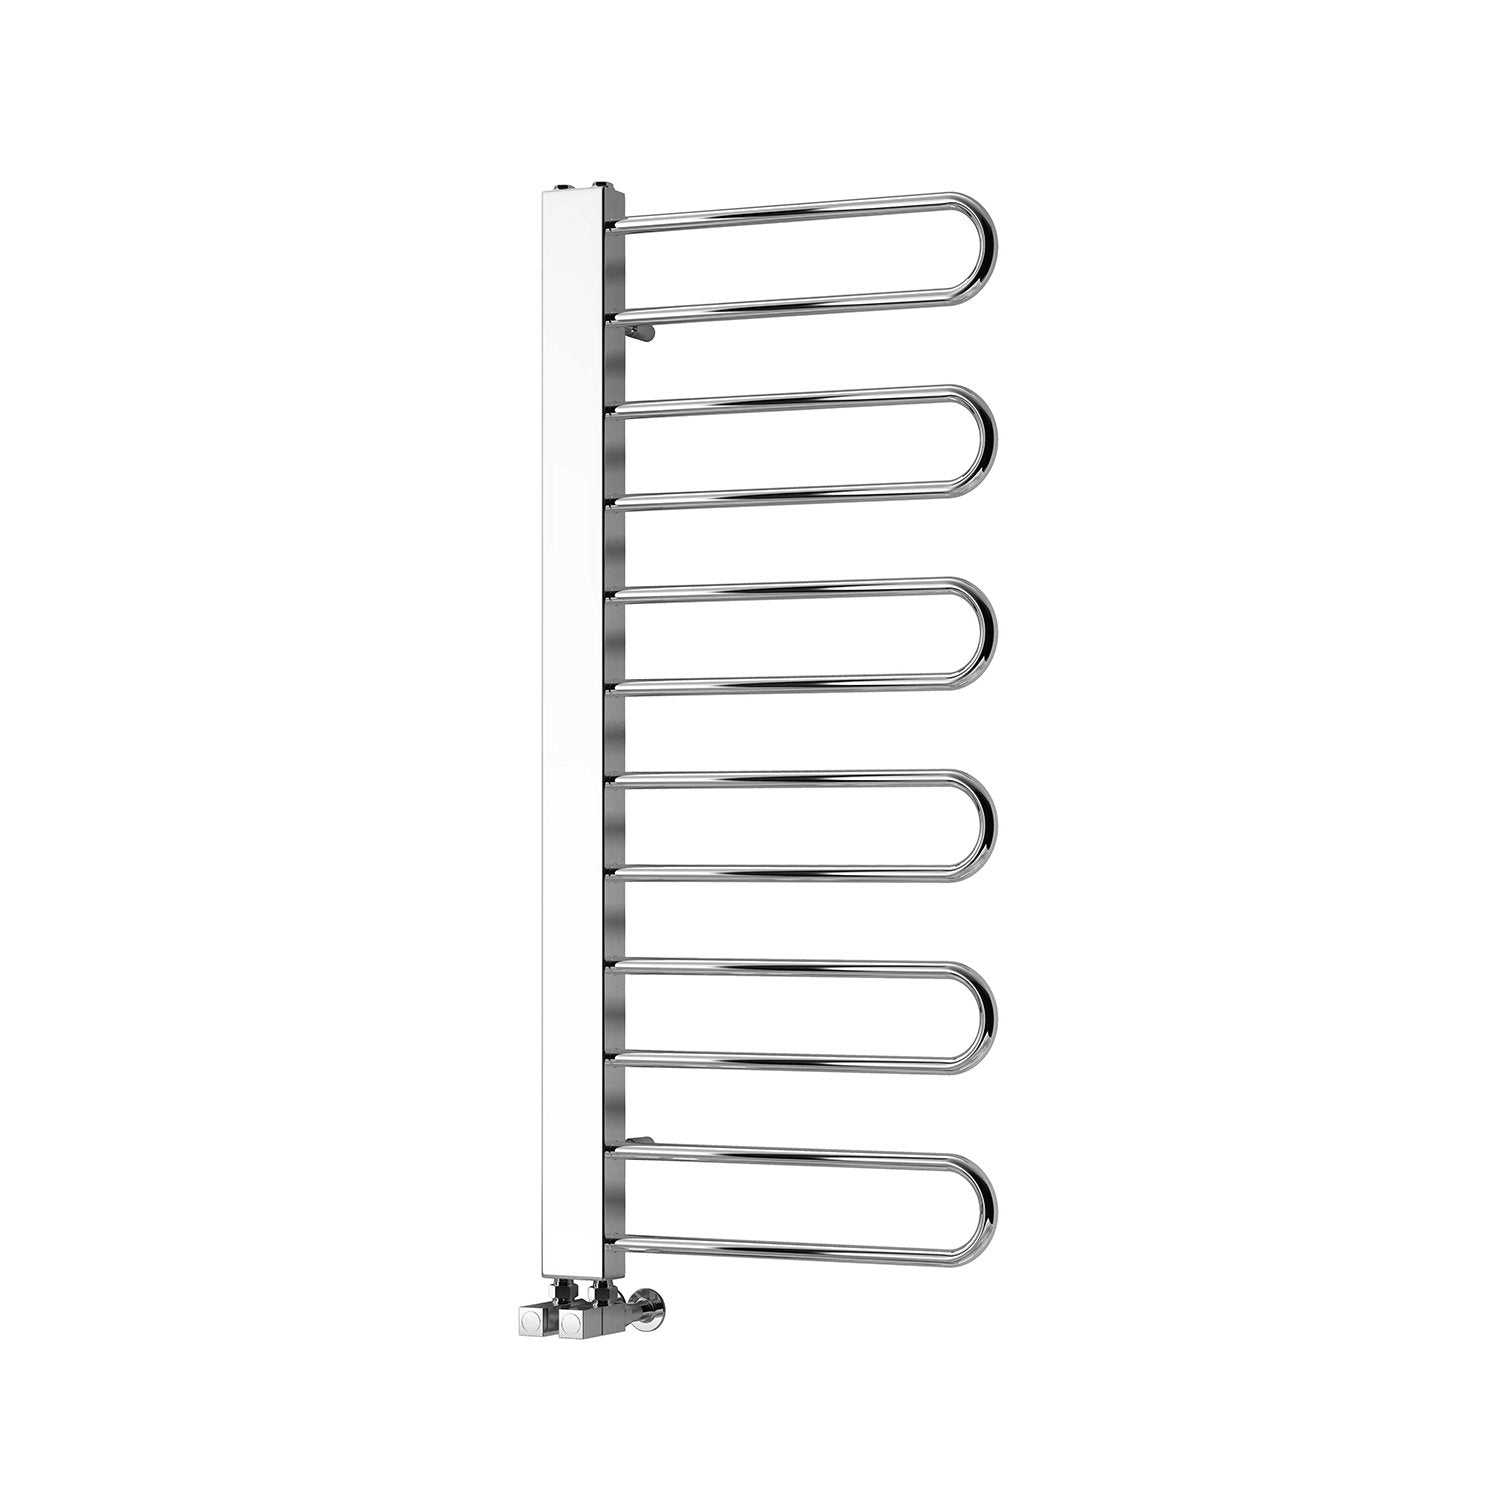 Reina Designer Larino Vertical Chrome Heated Towel Rail Steel Radiator